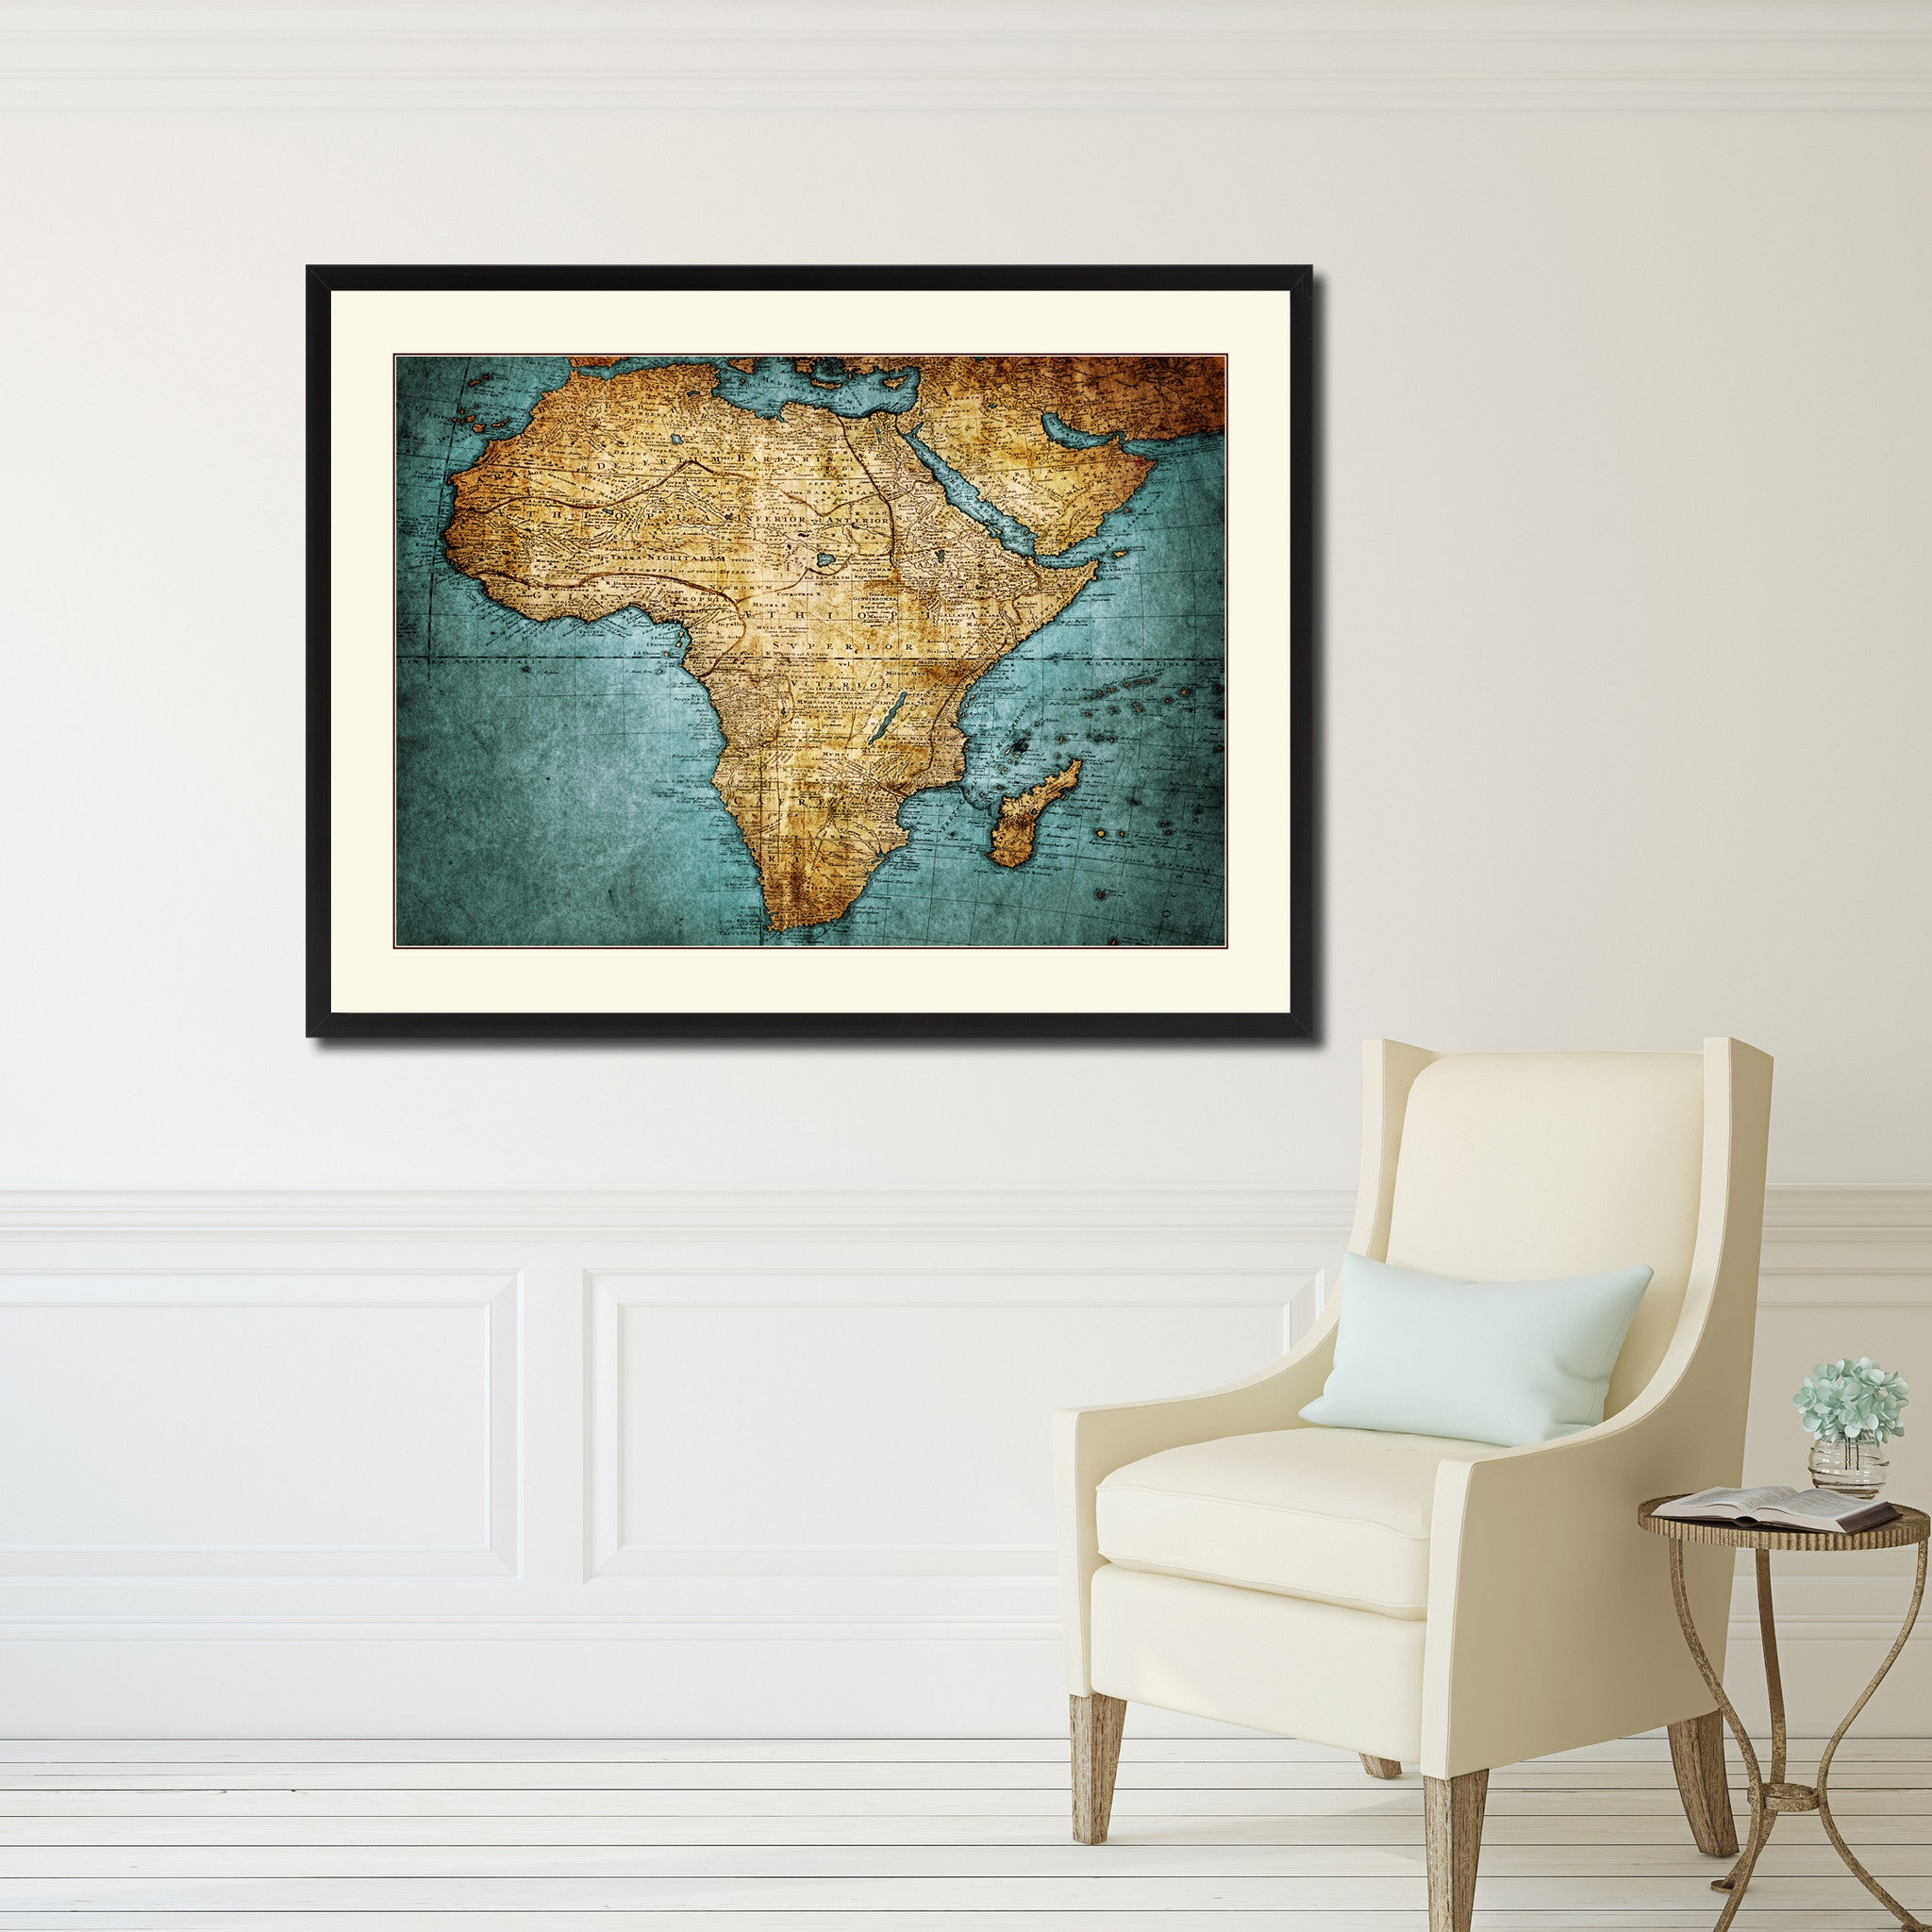 Africa Mapmaker Vintage Antique Map Wall Art Home Decor Gift Ideas Canvas Print Custom Picture Frame